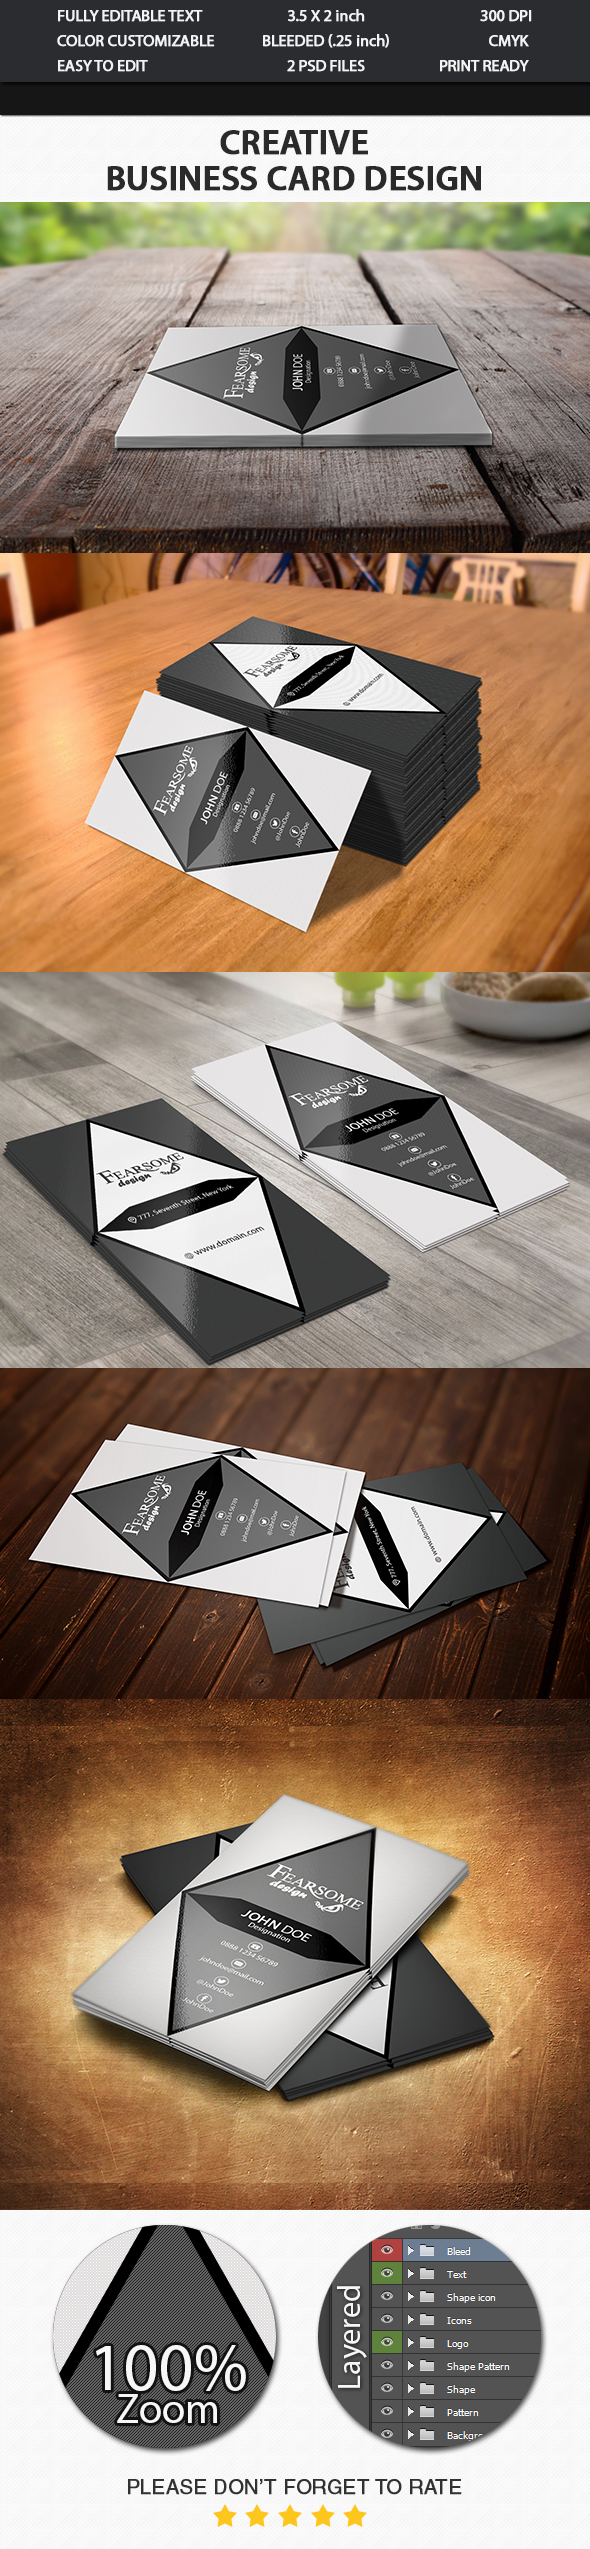 Creative Business Card 2